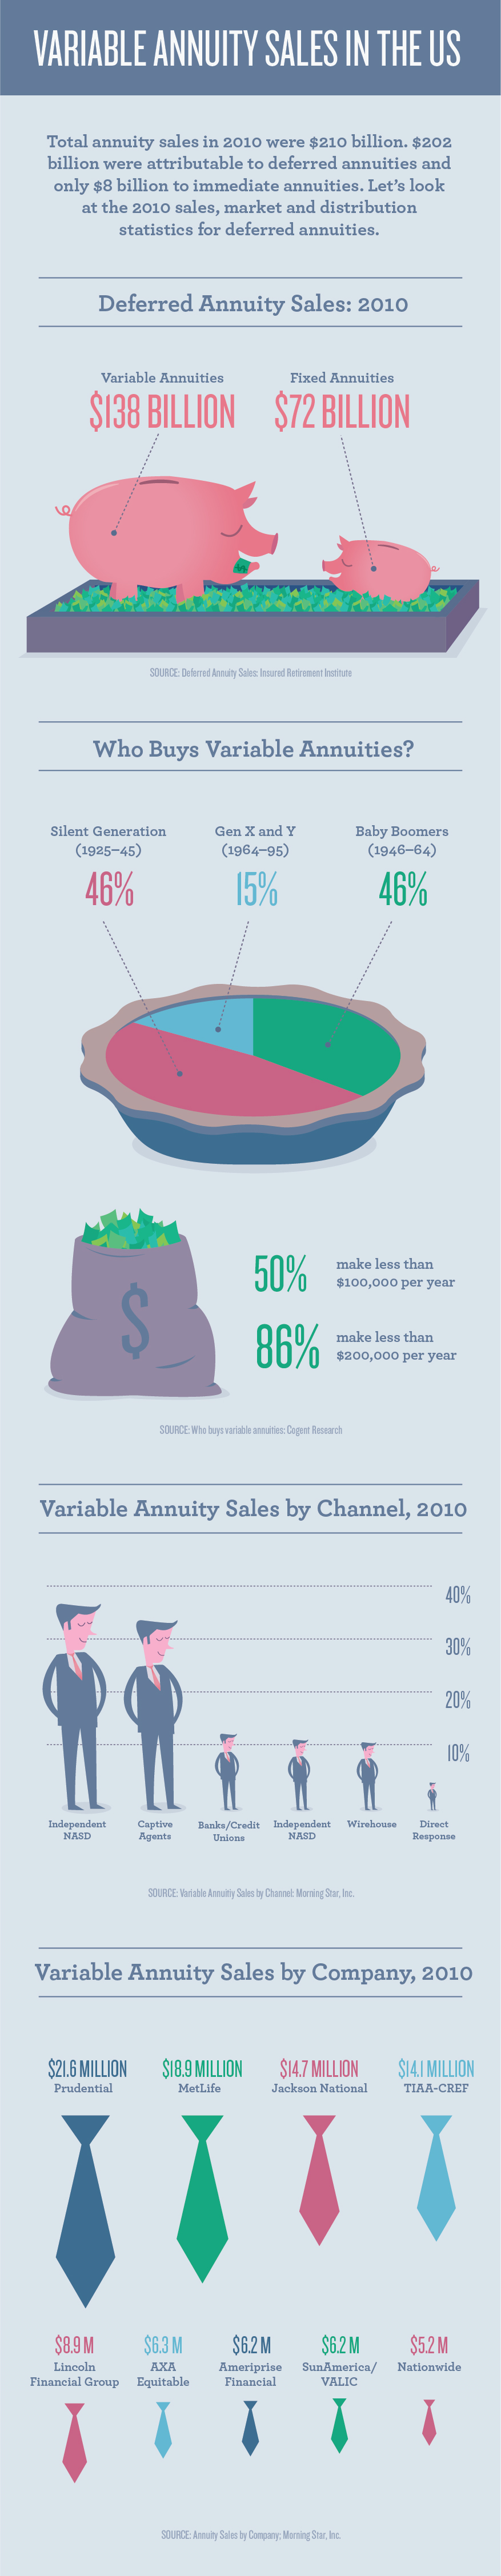 Deferred Annuity Sales 2010 - Infographic